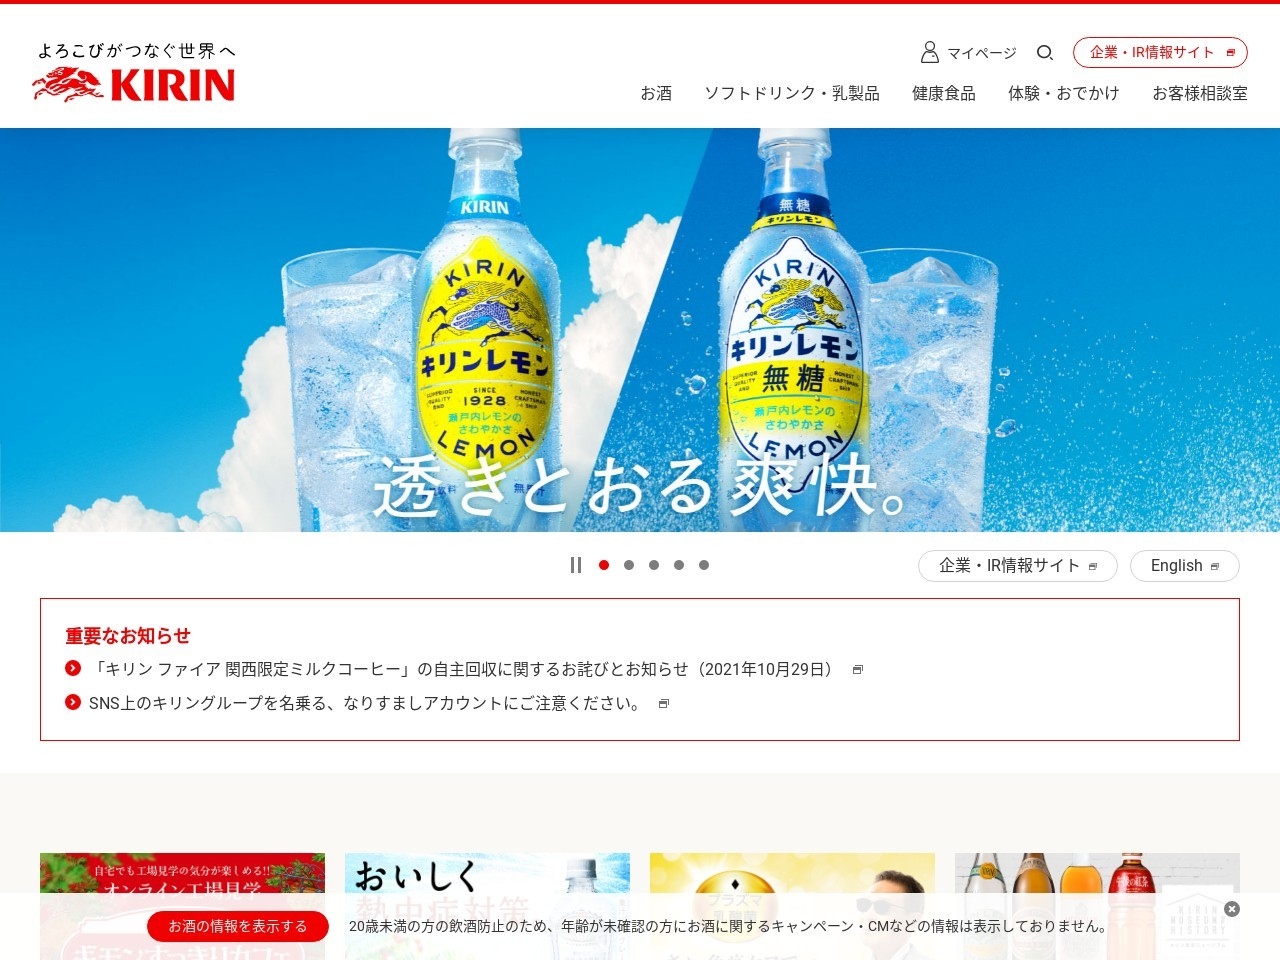 http://www.kirin.co.jp/products/beer/ichiban-sp/premium_cp/pc/